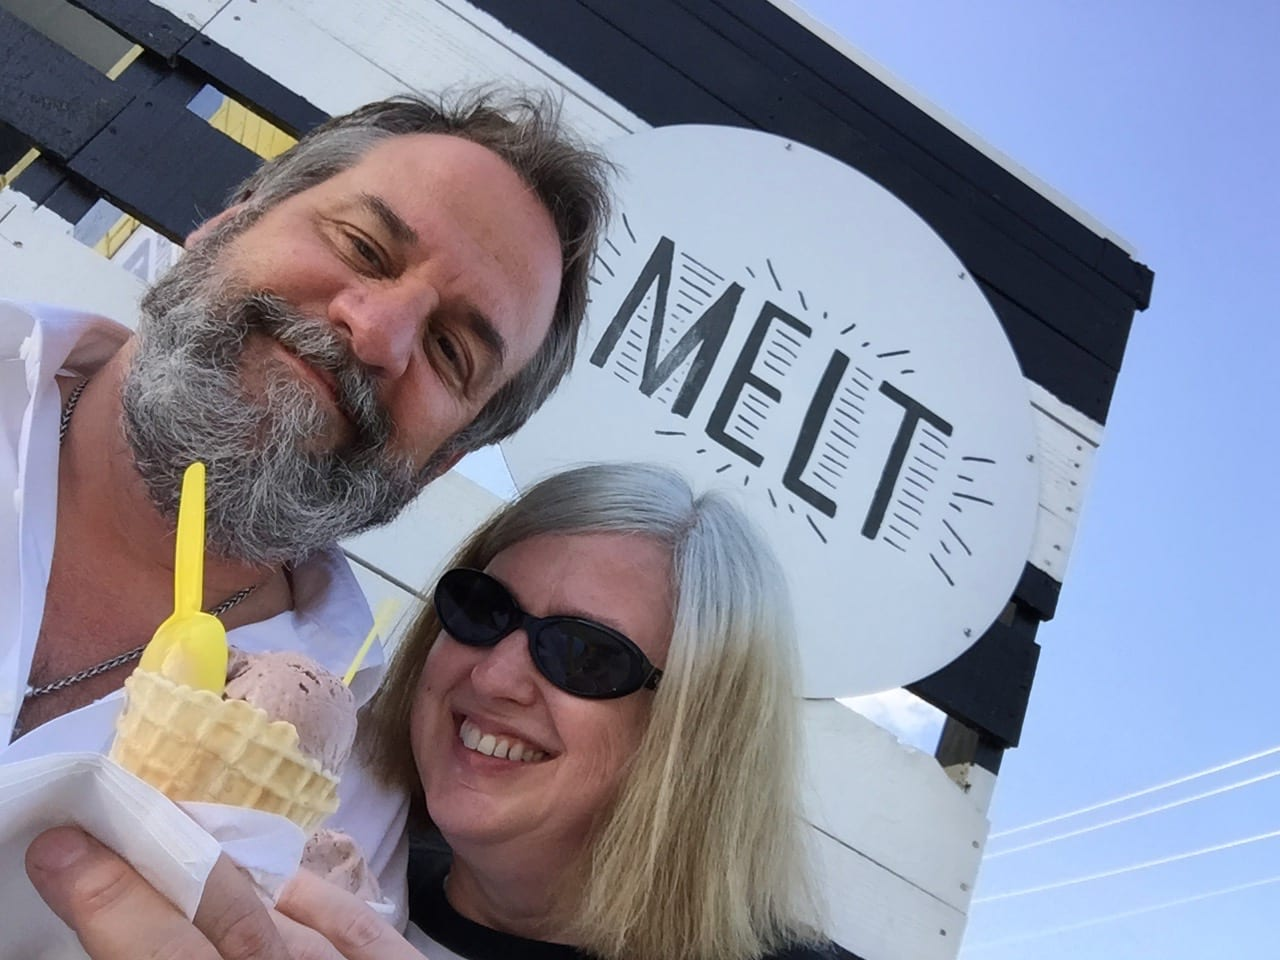 Melt Ice Cream in Fort Worth